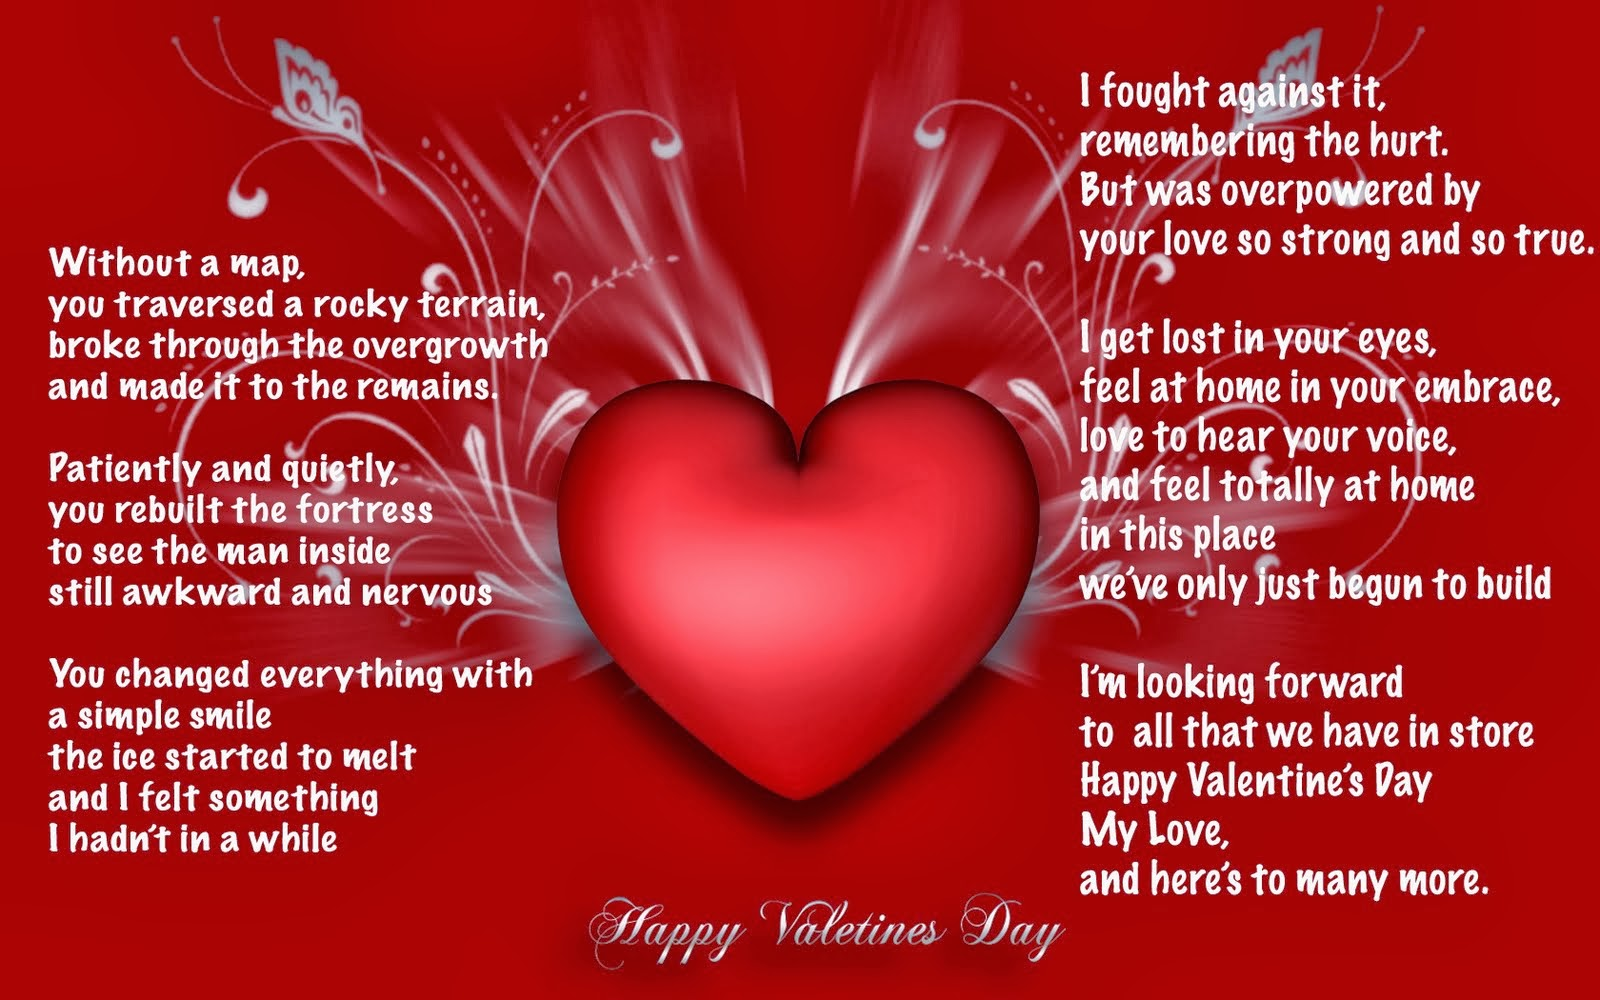 valentines day quotes images 2016